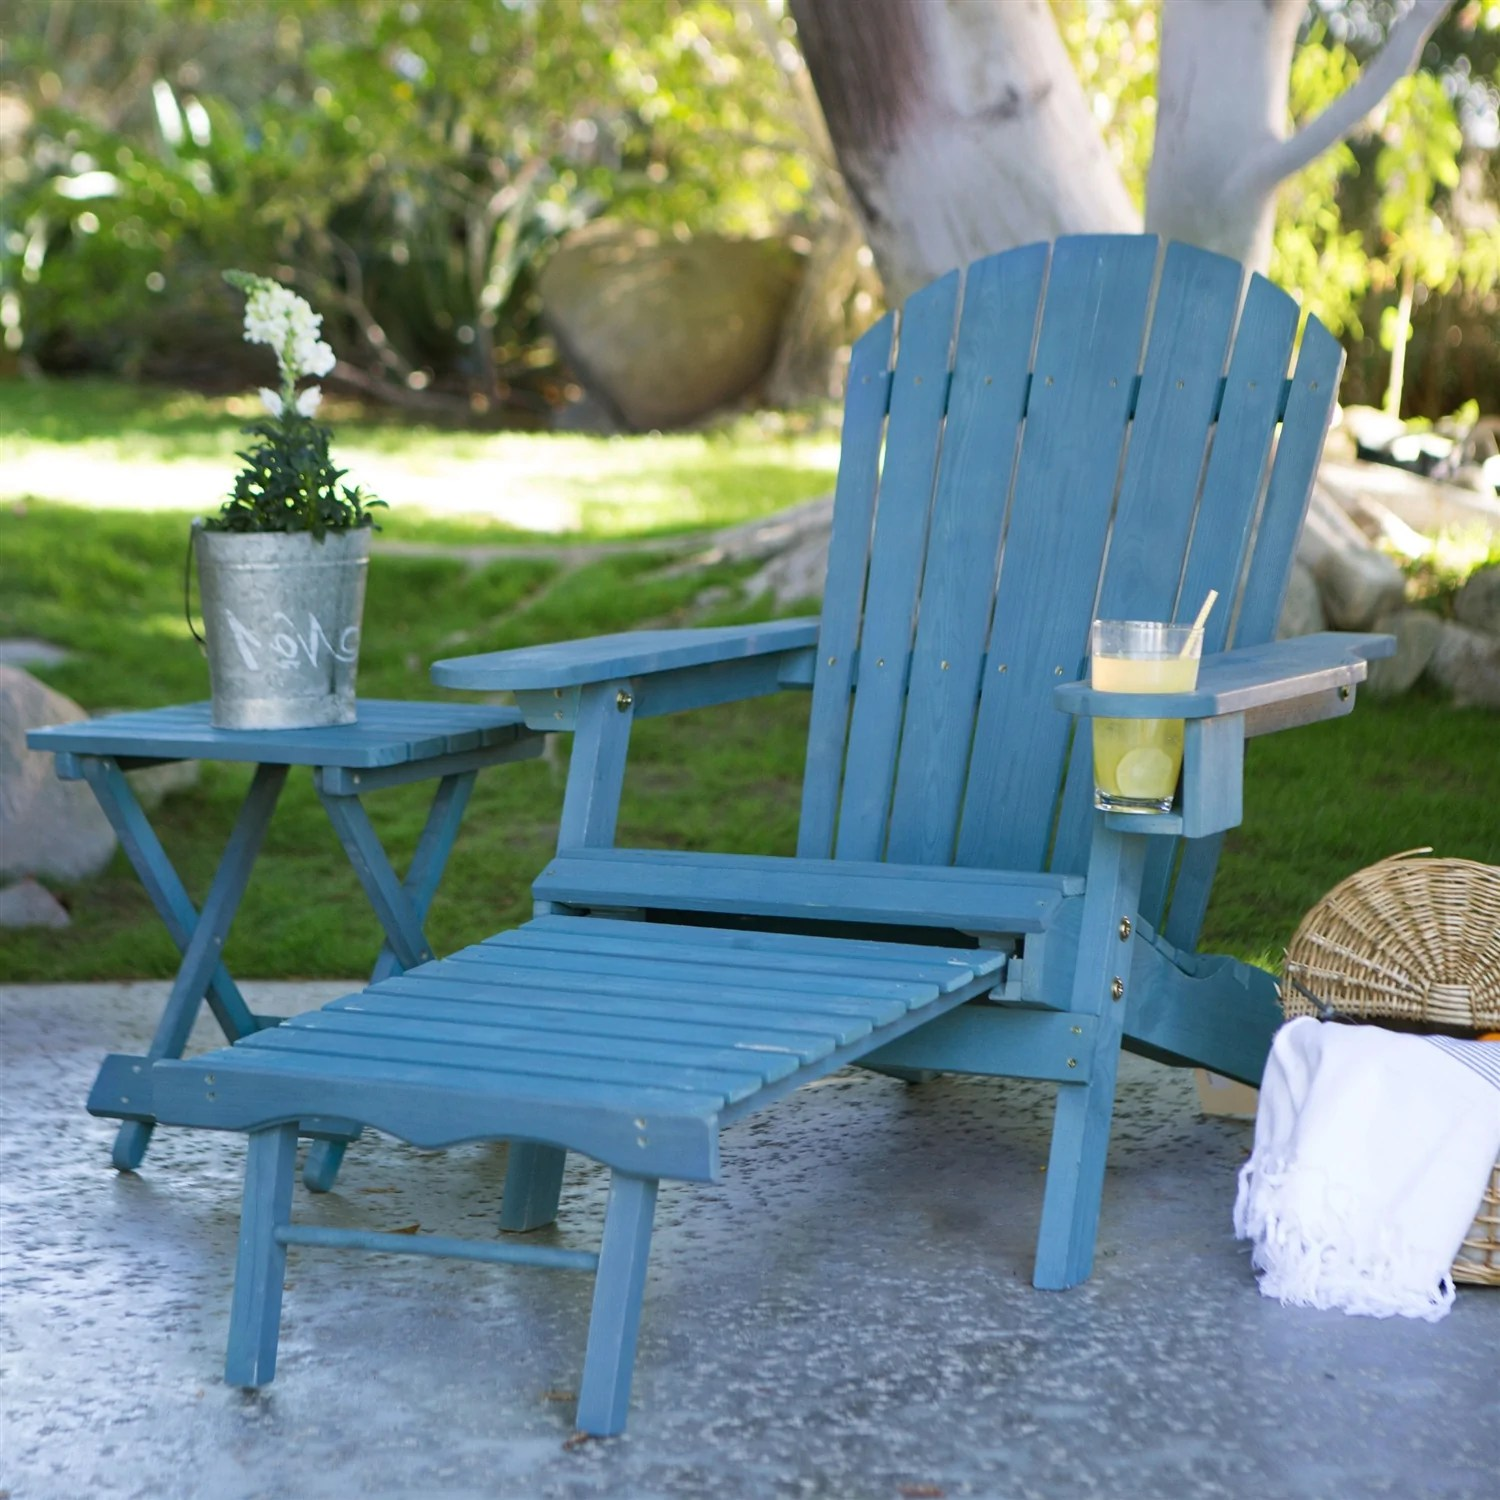 Blue Stain Wood Adirondack Chair With Pull Out Ottoman And Built In Cup Holder